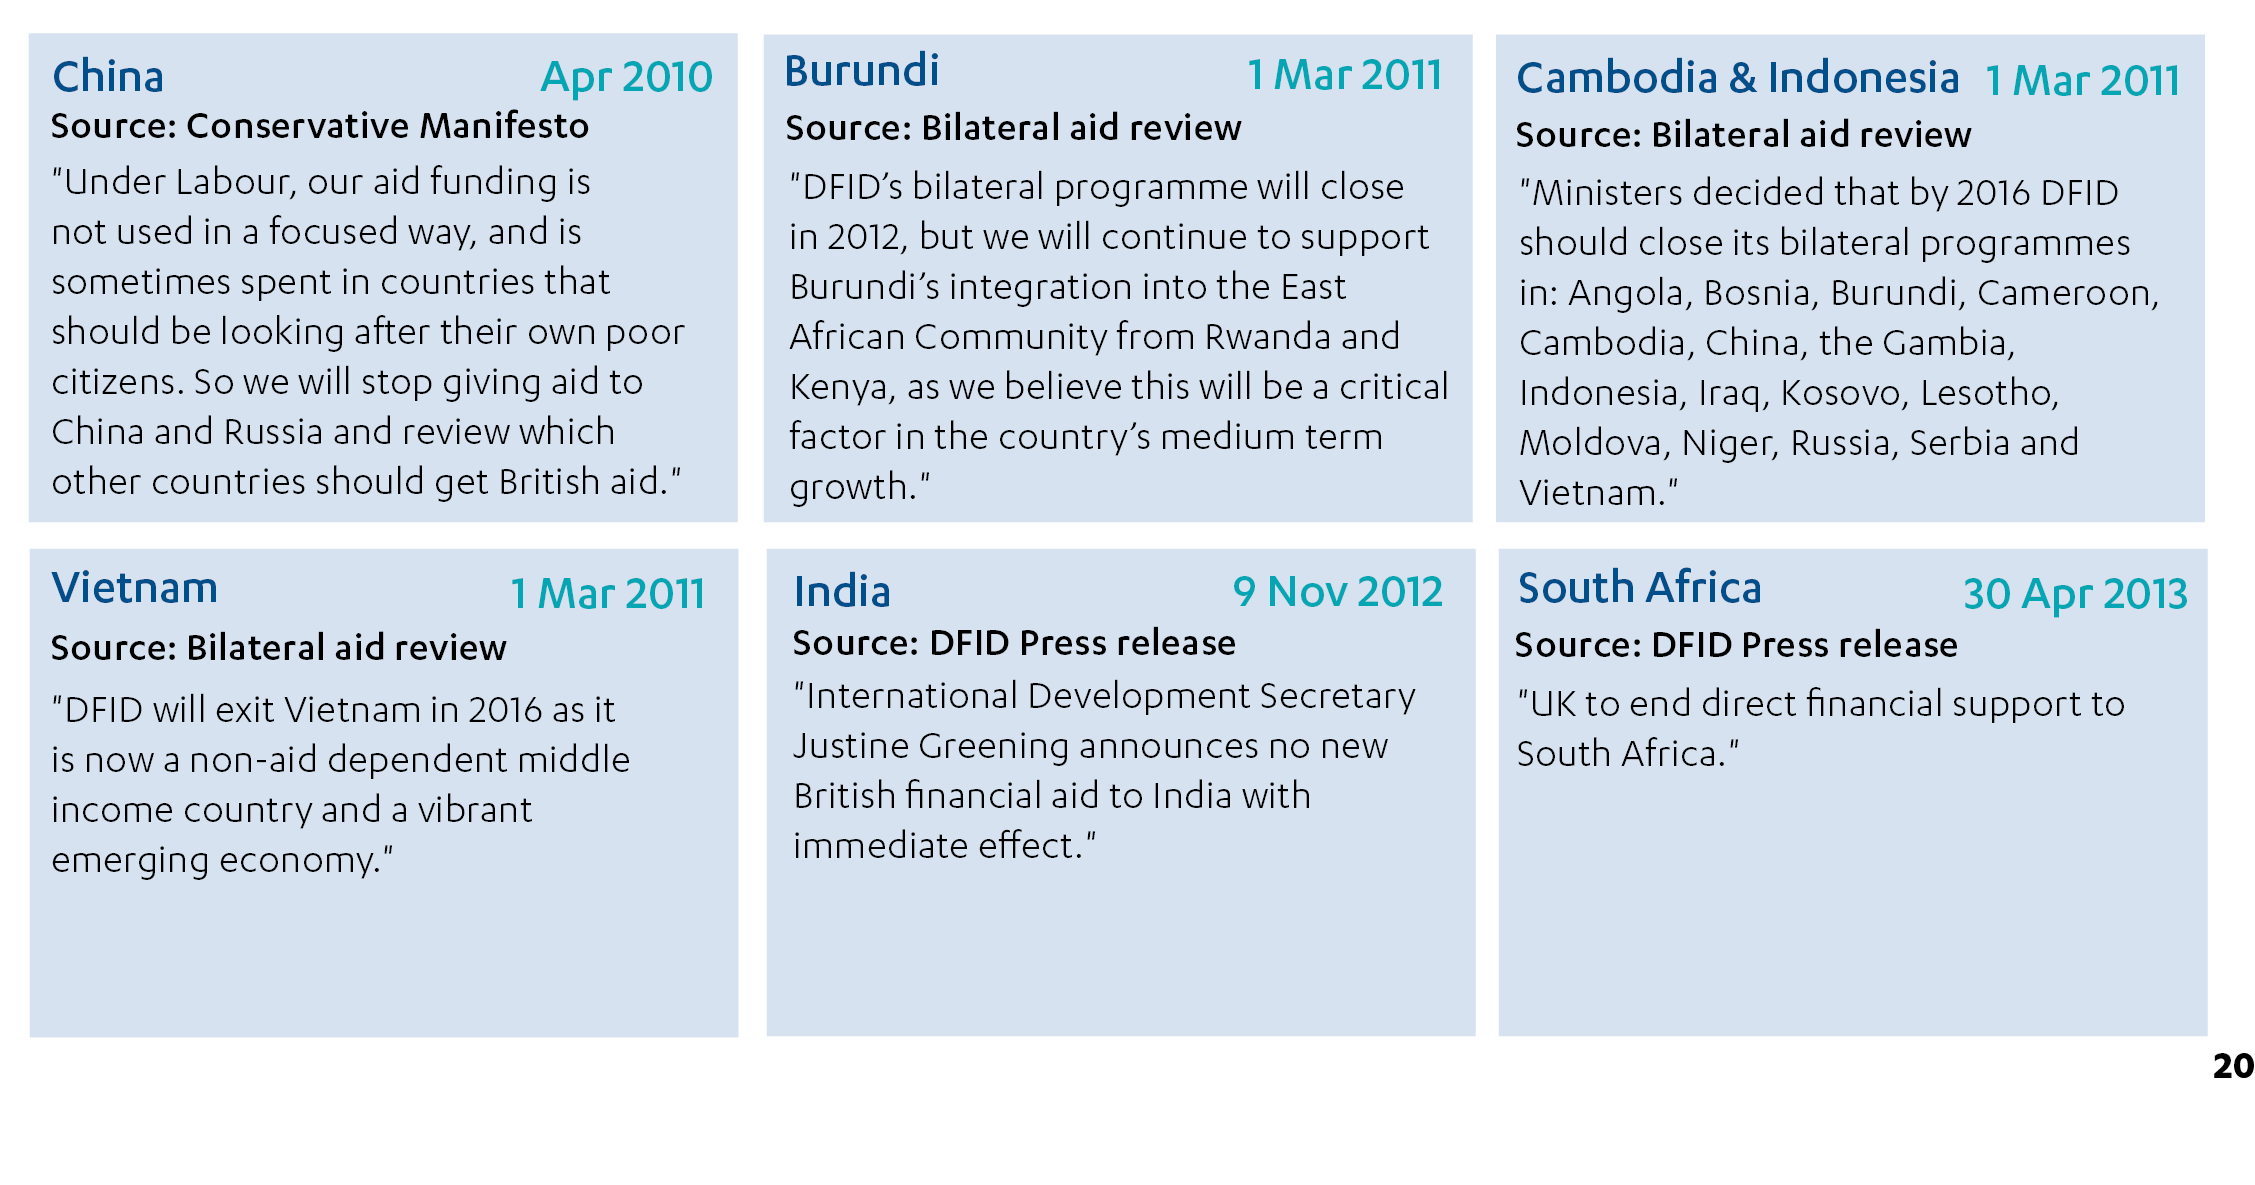 Examples of announcements on exit and transition from for example the 2010 Conservative manifesto or DFID press releases